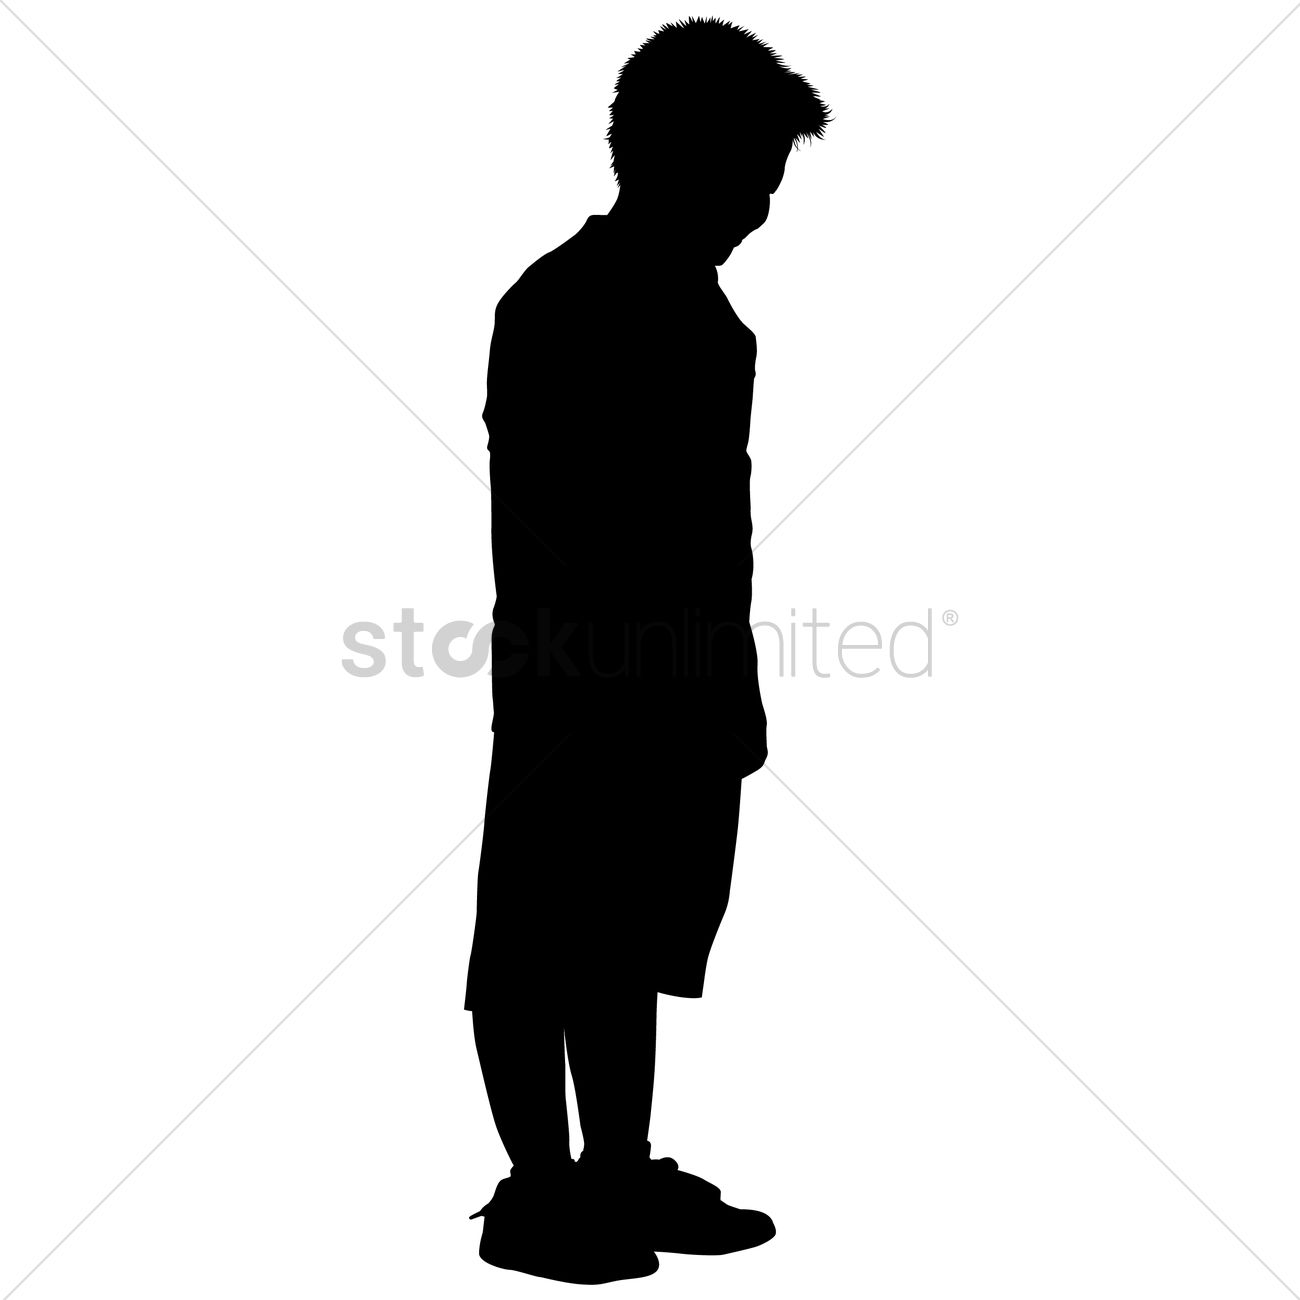 Child Standing Silhouette Vector | www.imgkid.com - The ...